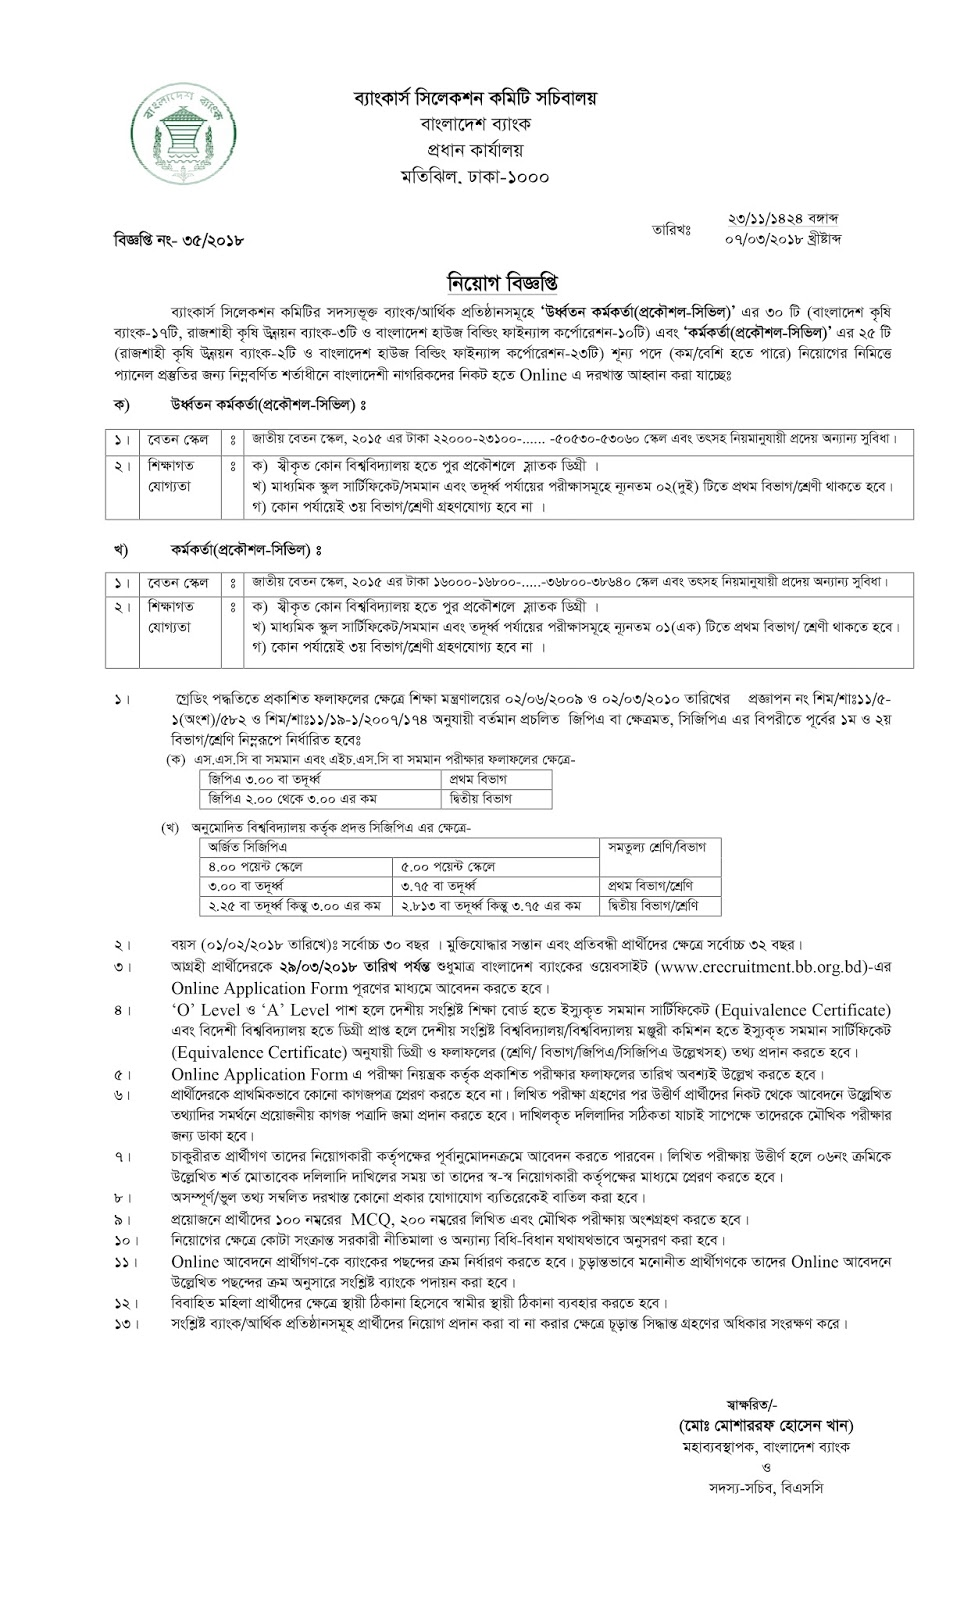 Rajshahi Krishi Unnayan Bank(RAKUB) Senior Officer (Engineer-Civil) Job Circular 2018